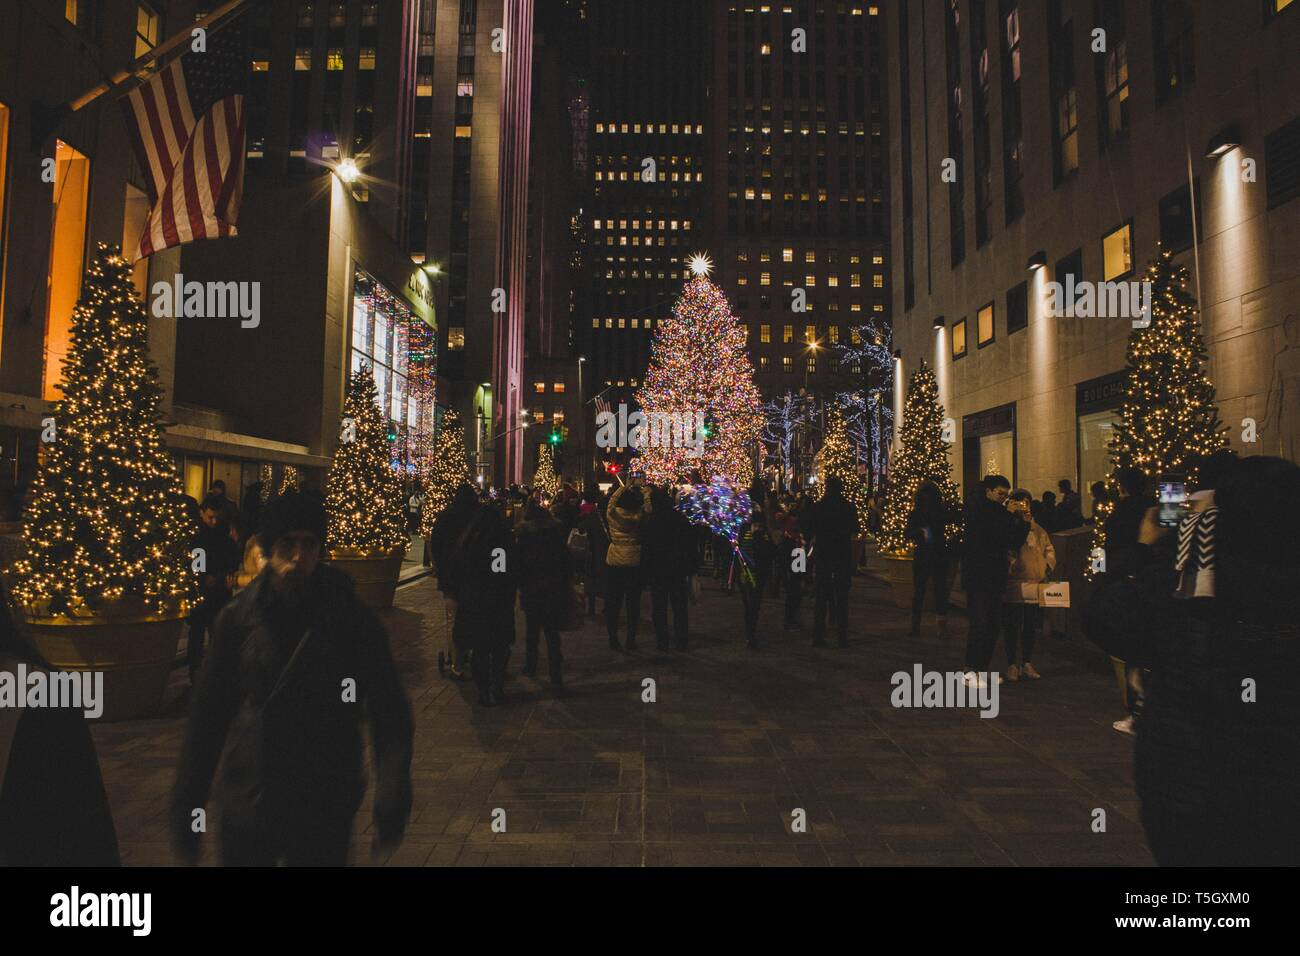 Nyc During Christmas.Beautiful Christmas Decorations In New York During Winter